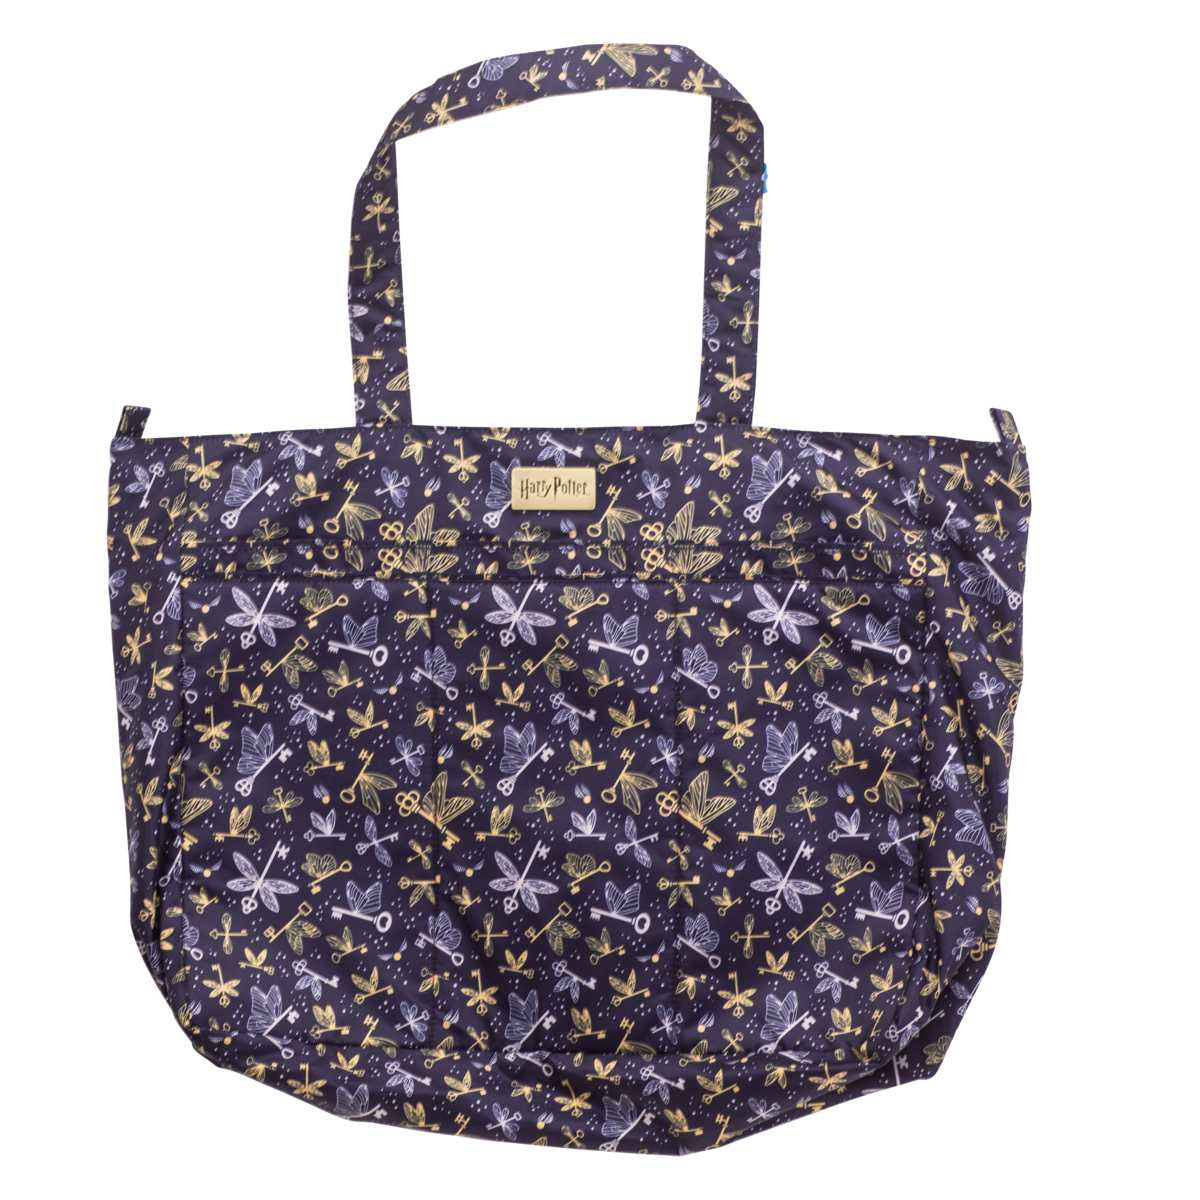 Jujube Super Be – This ultralight tote features two pockets and ample storage space to hold everything from dragon eggs to groceries.